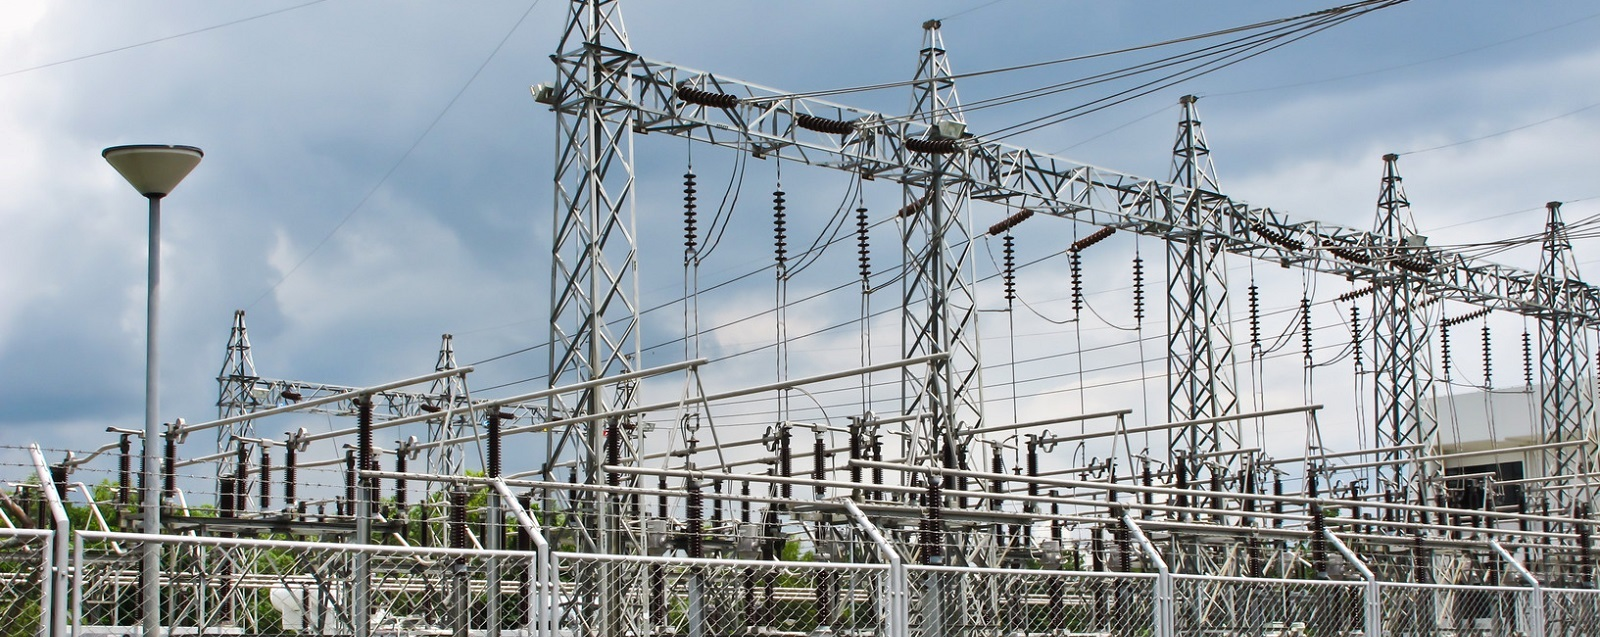 POWER AND ELECTRICAL<br>SUBSTATIONS